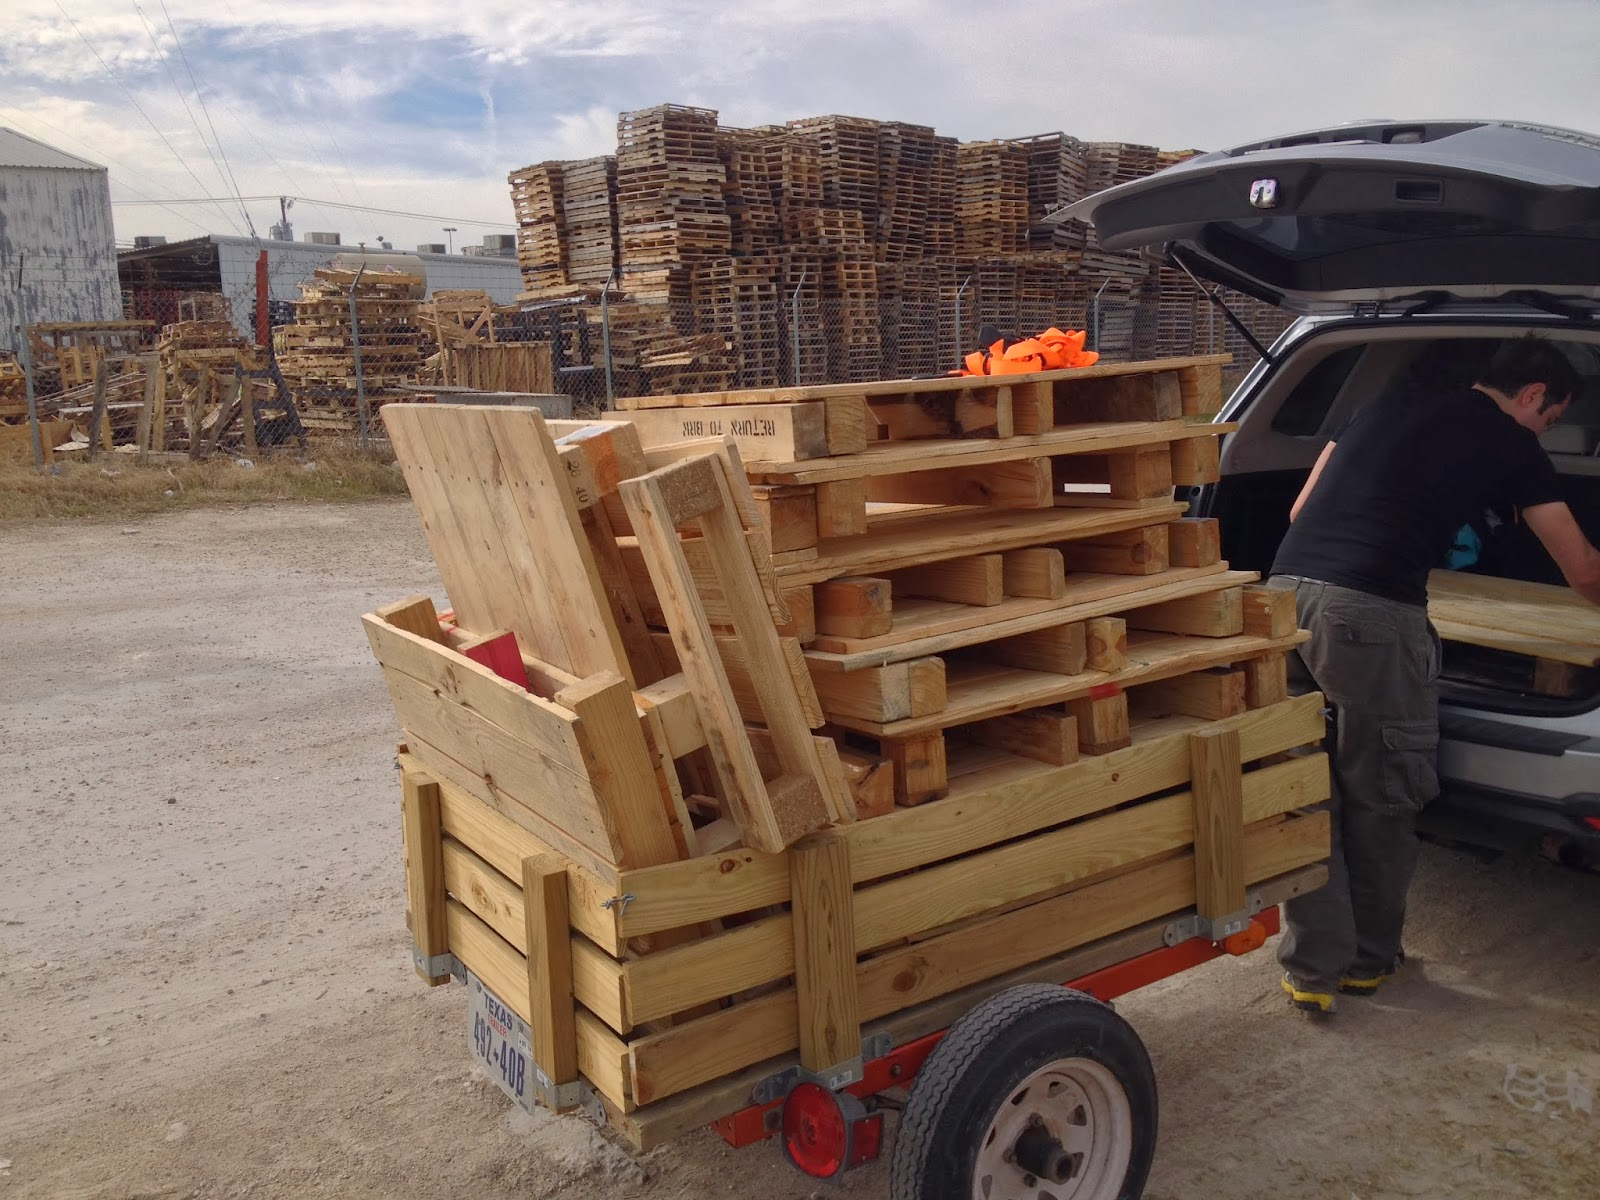 small trailer loaded with pallets and a man standing next to it